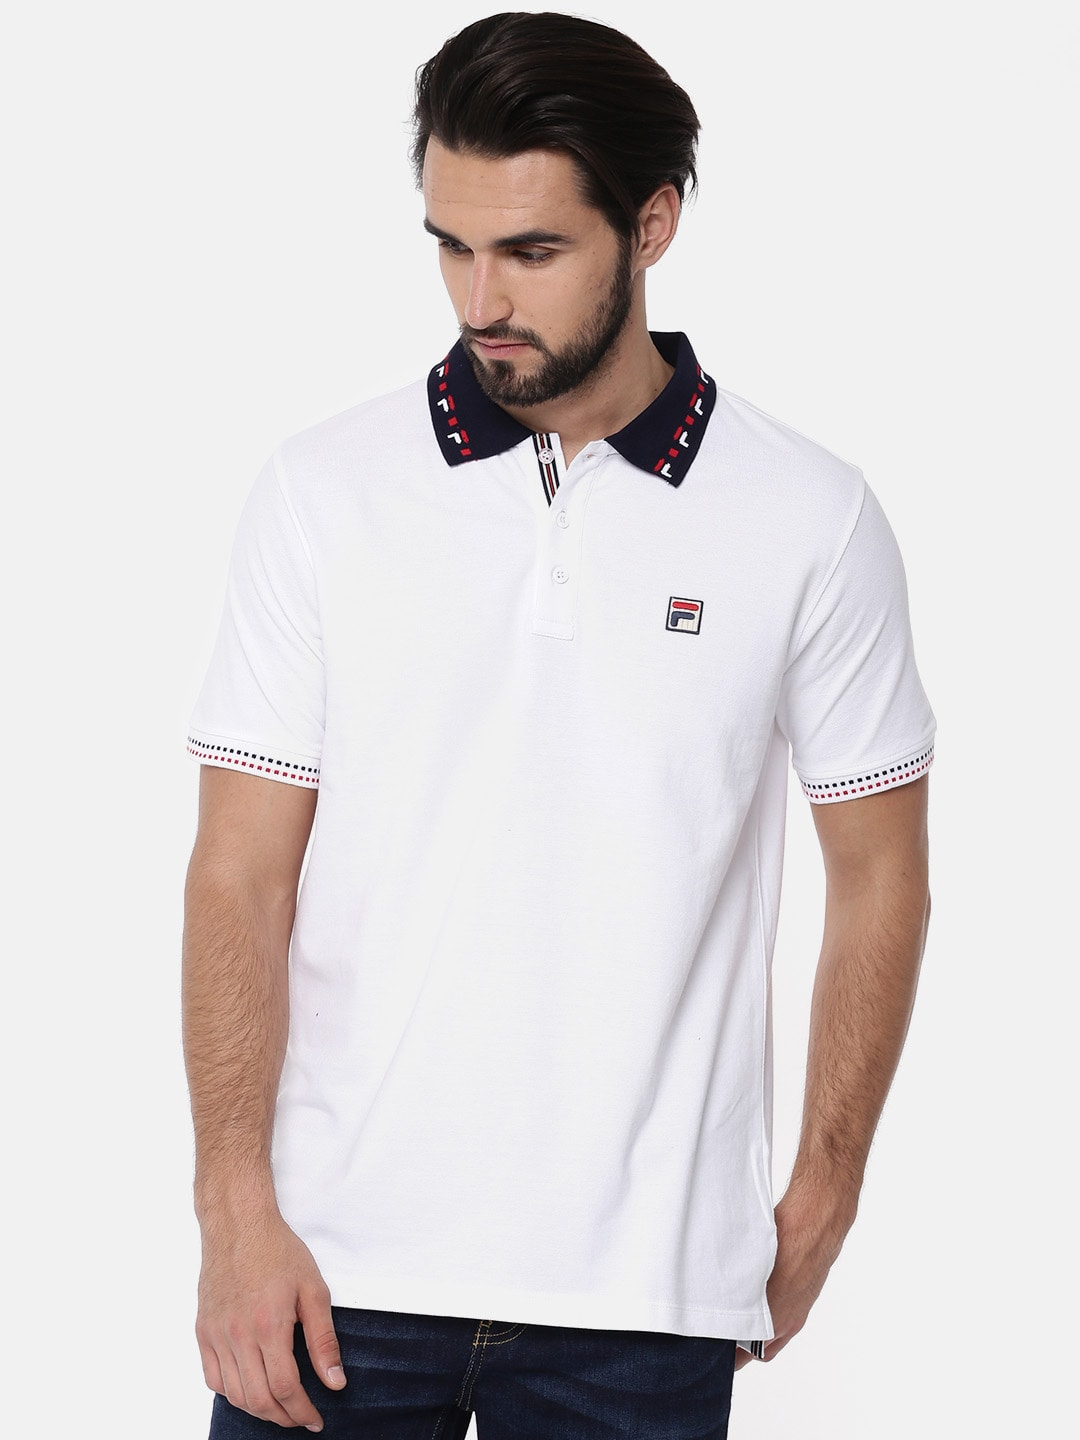 a6020701c2 Fila T-shirt - Buy Fila T-shirts for Men   Women Online in India